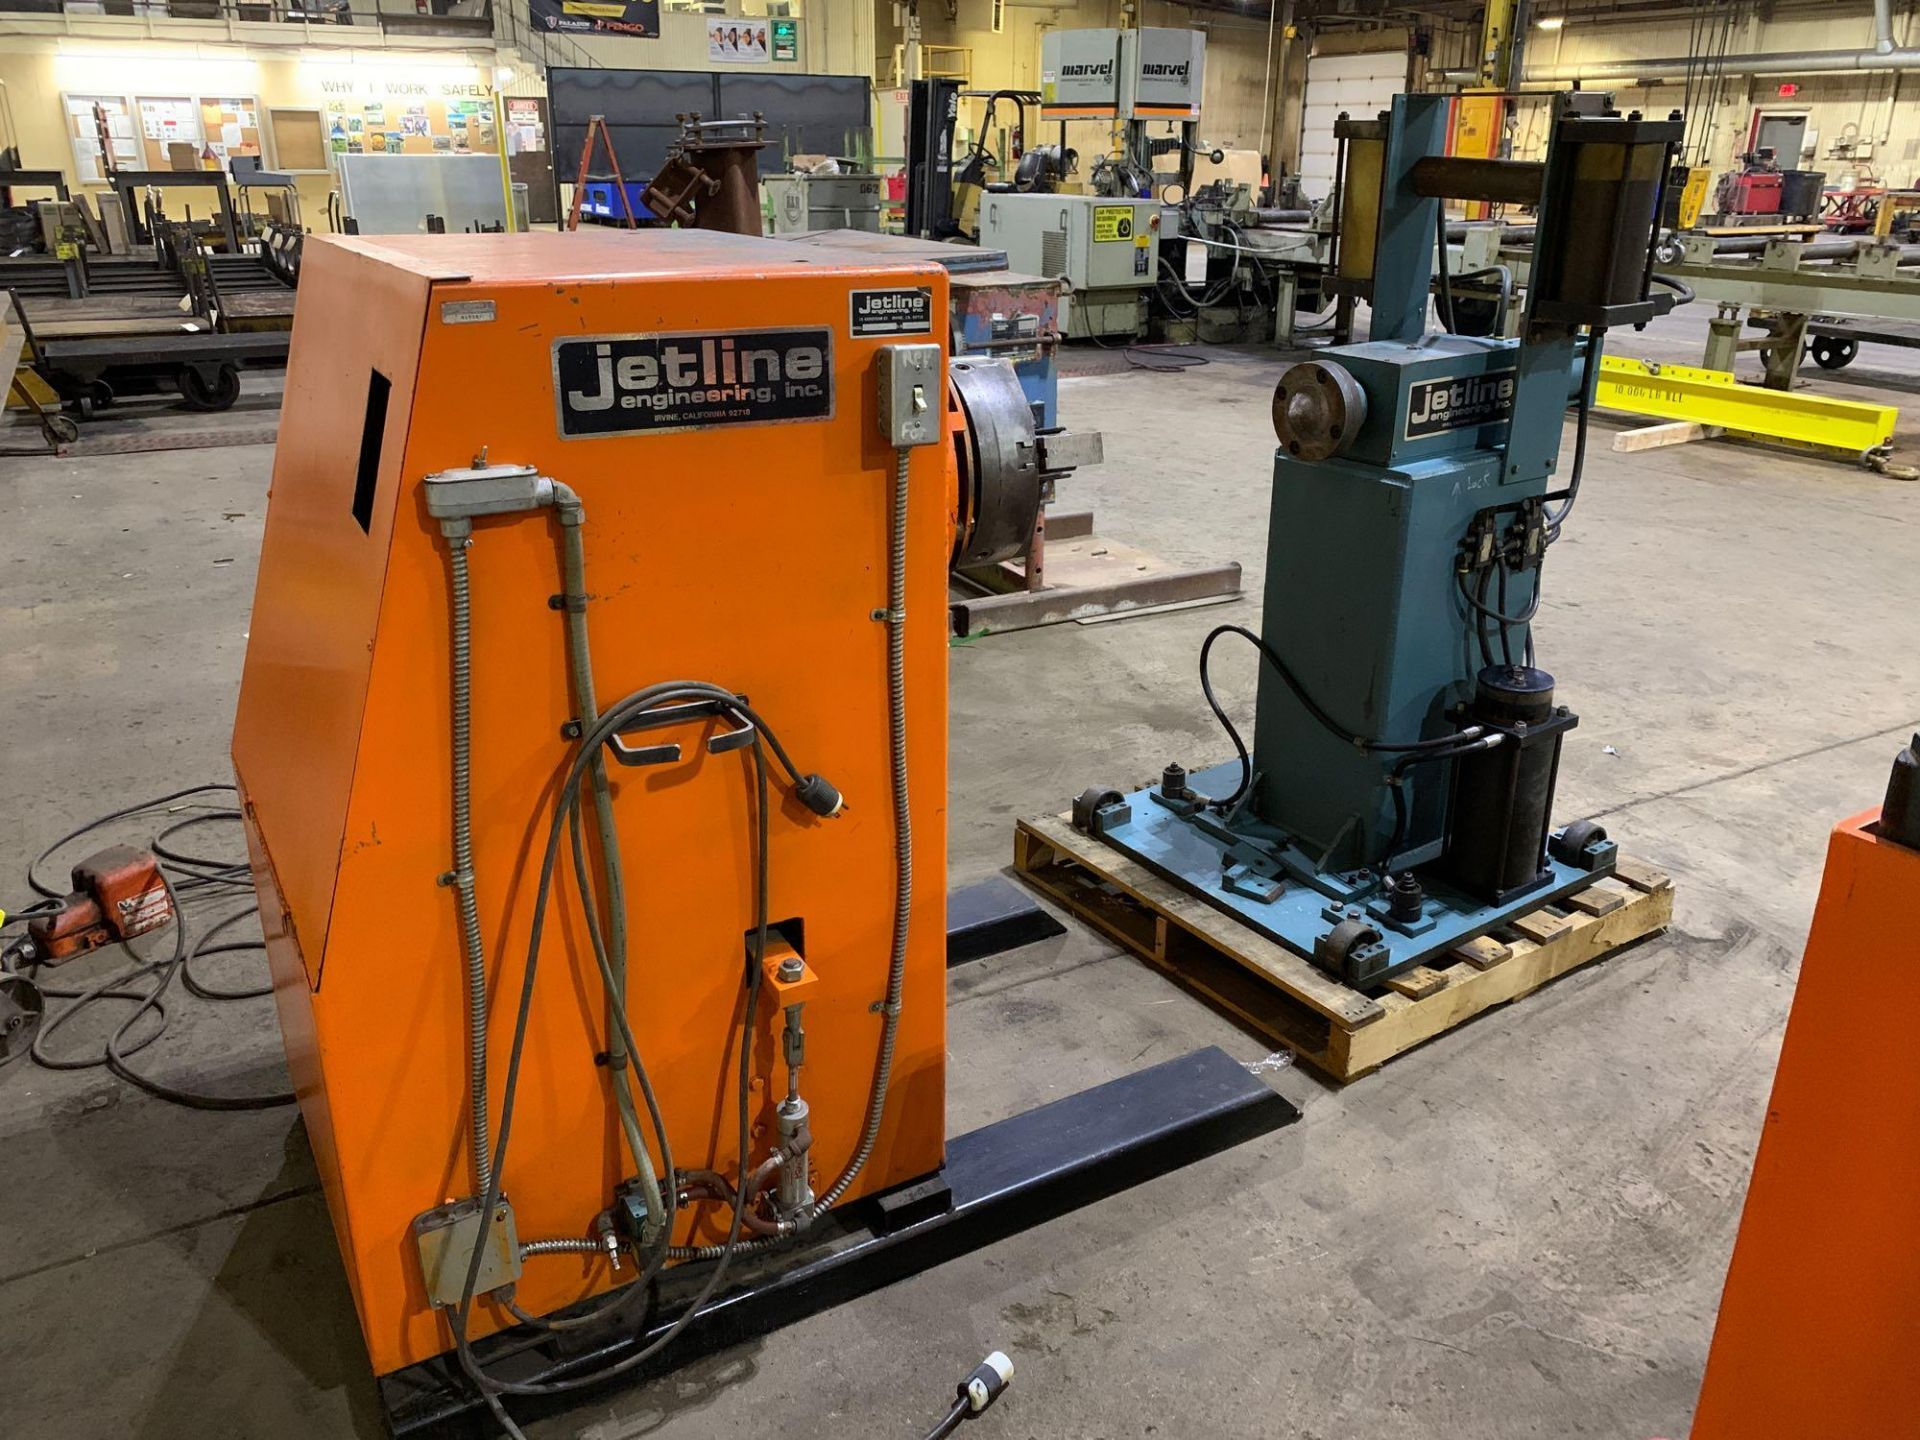 Jetline Welding Positioner Model CU5-216 Serial Number: 07625 Pipe Weld Positioner with Tail Stock I - Image 3 of 15